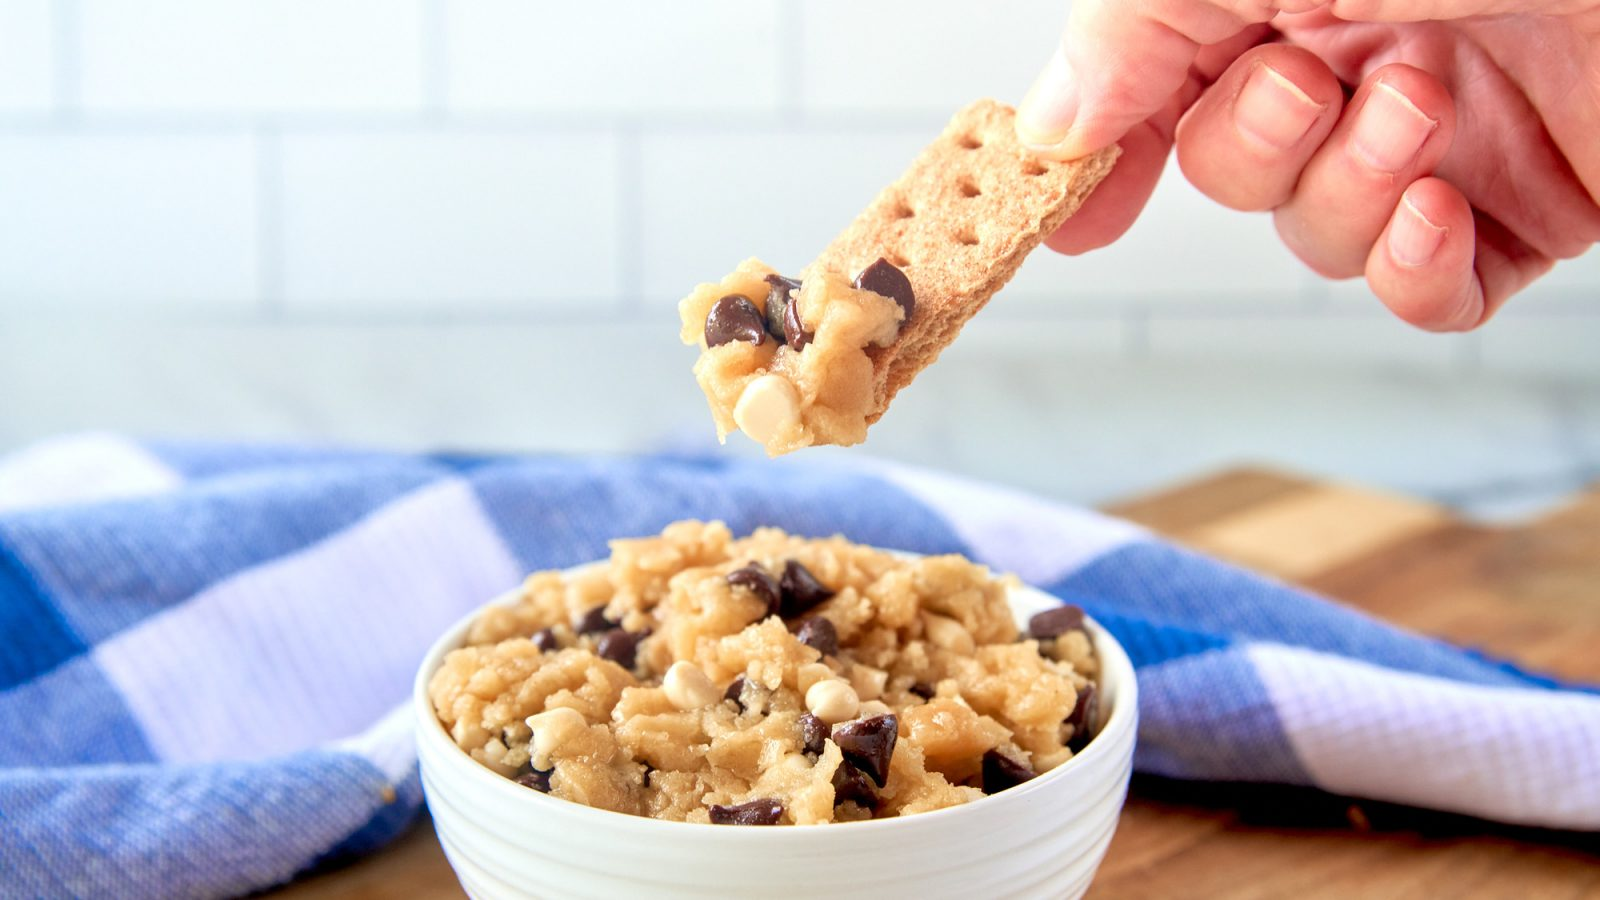 vegan cookie dough getting eaten by dipping a graham cracker into a bowl